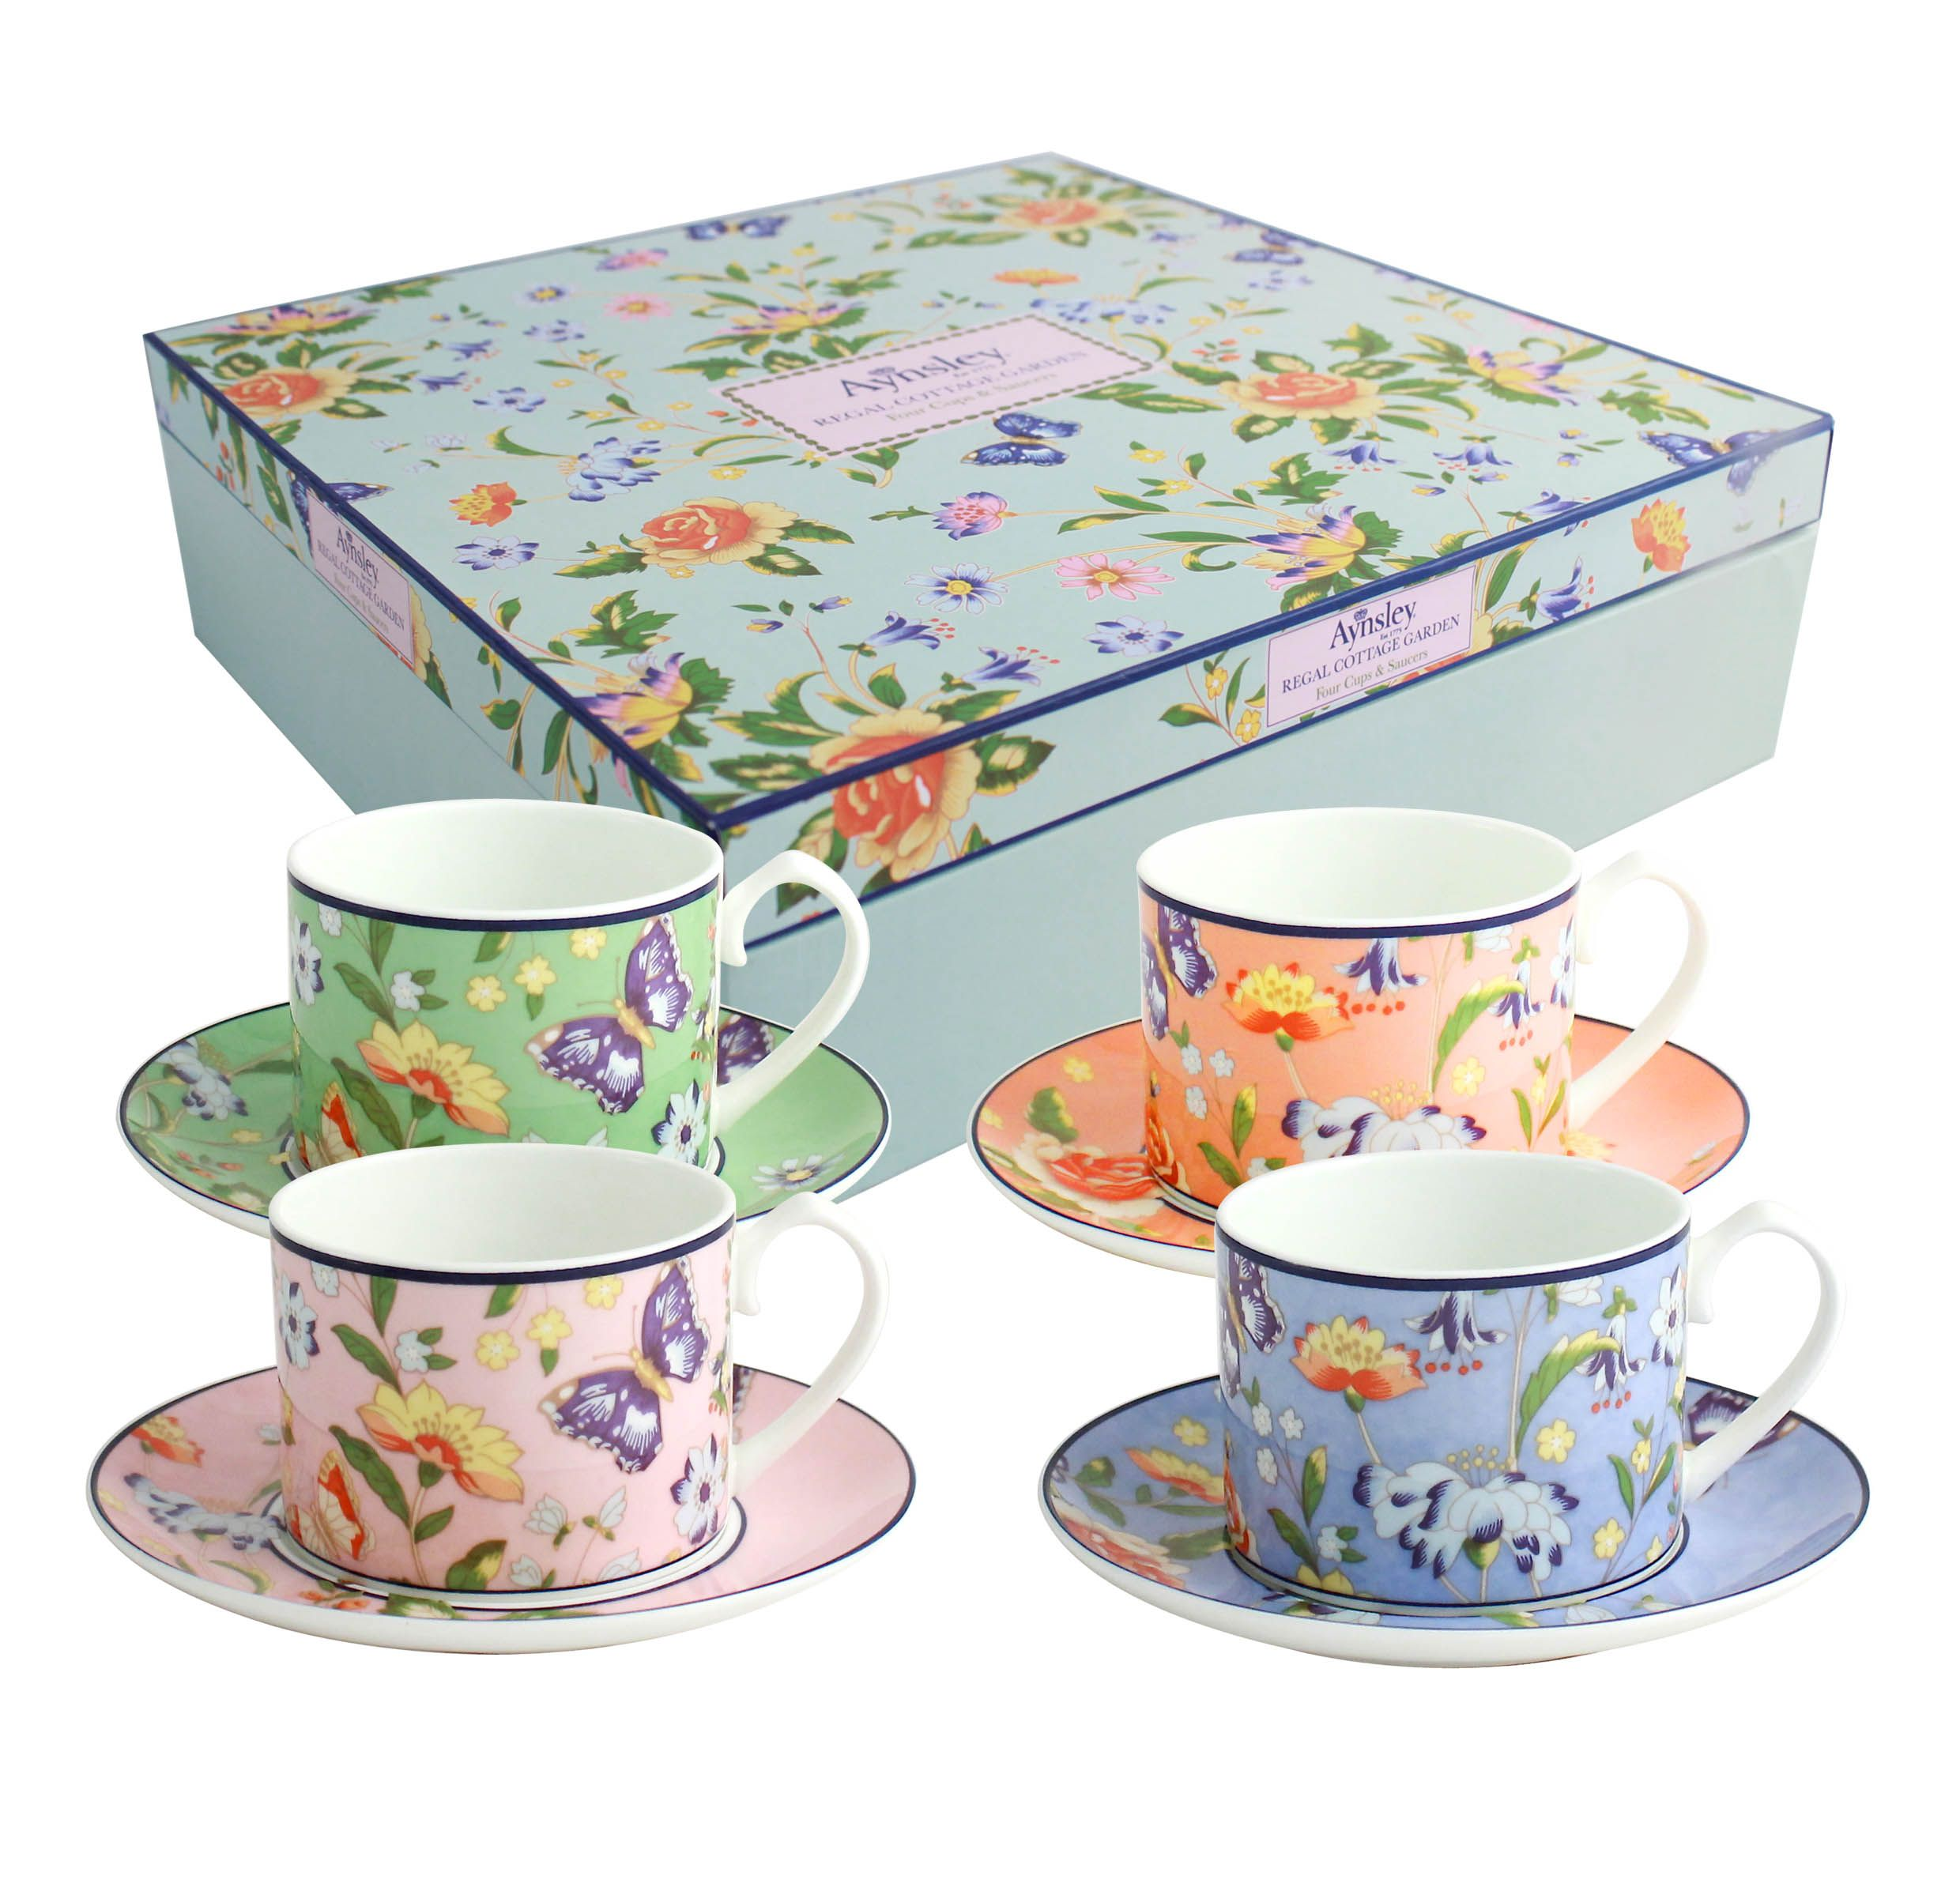 Aynsley Aynsley Cottage Garden 4 person regal cups and saucers